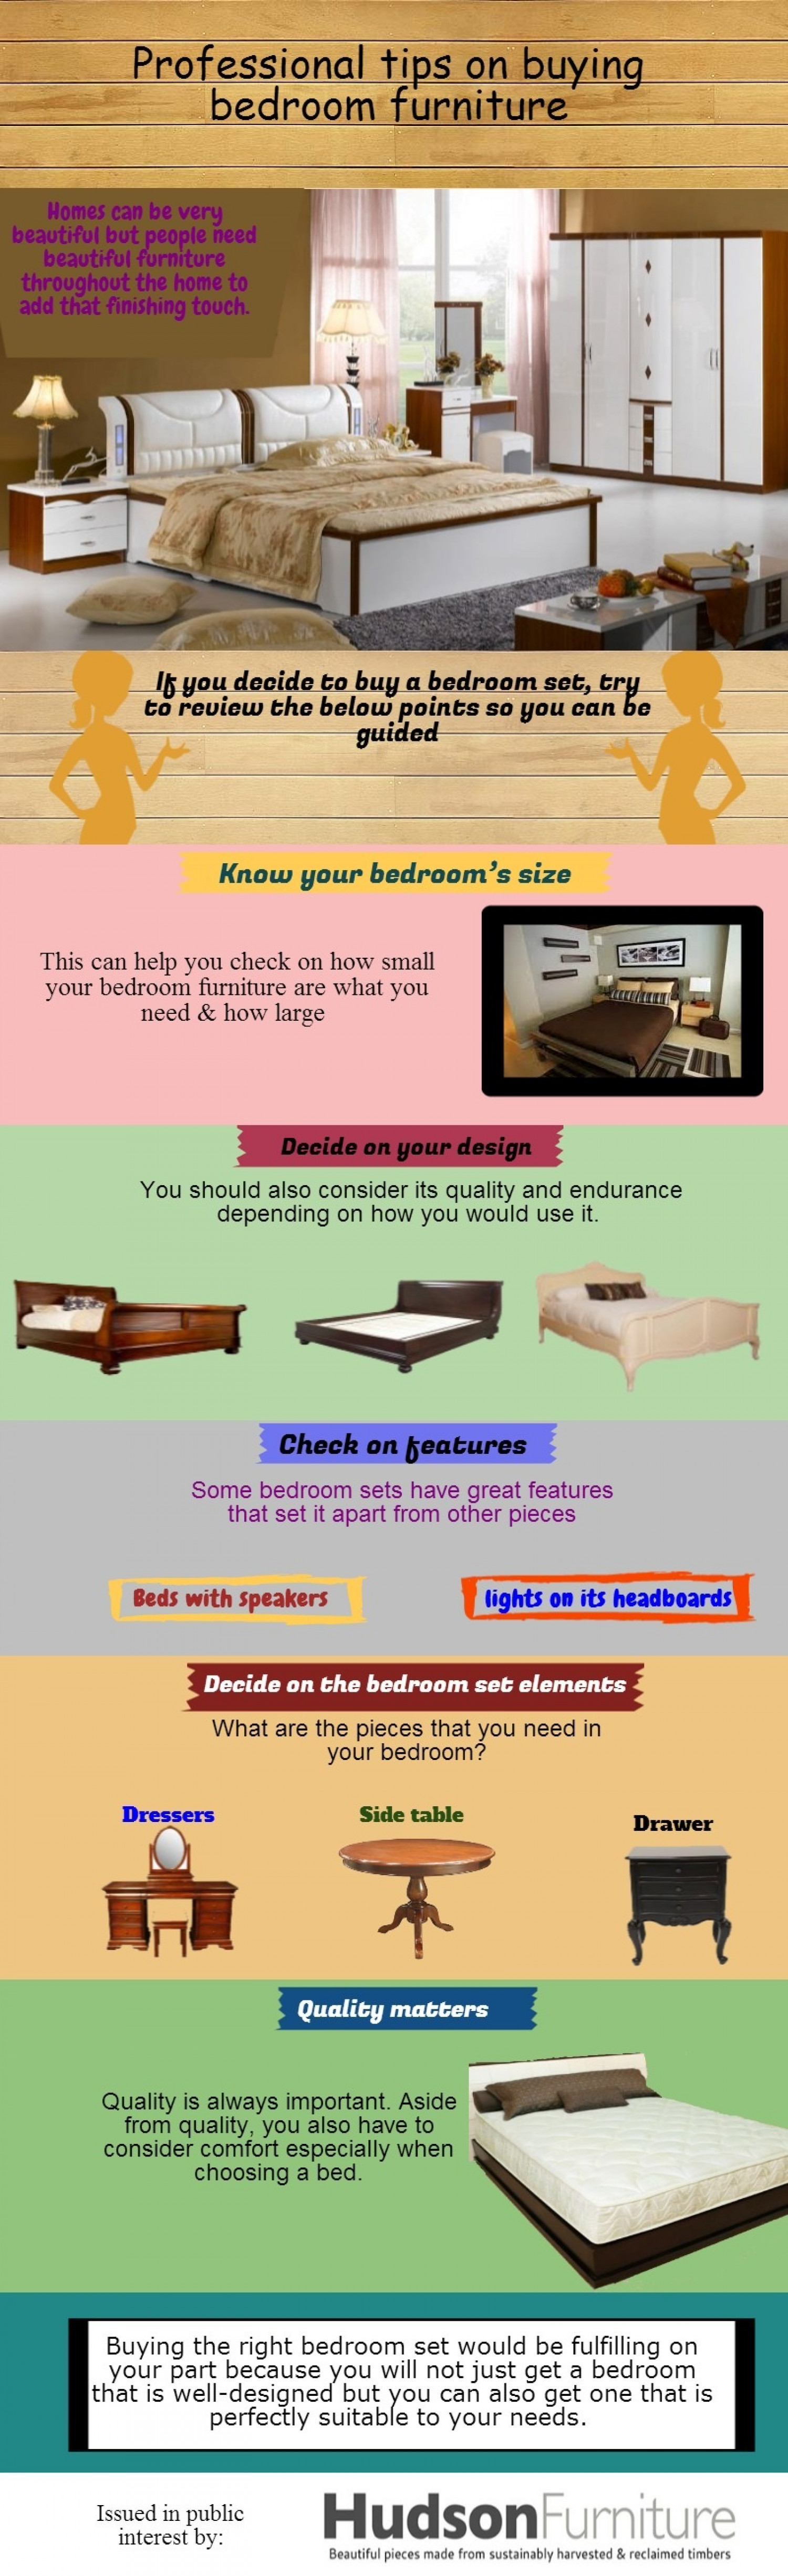 Professional tips on buying bedroom furniture Infographic